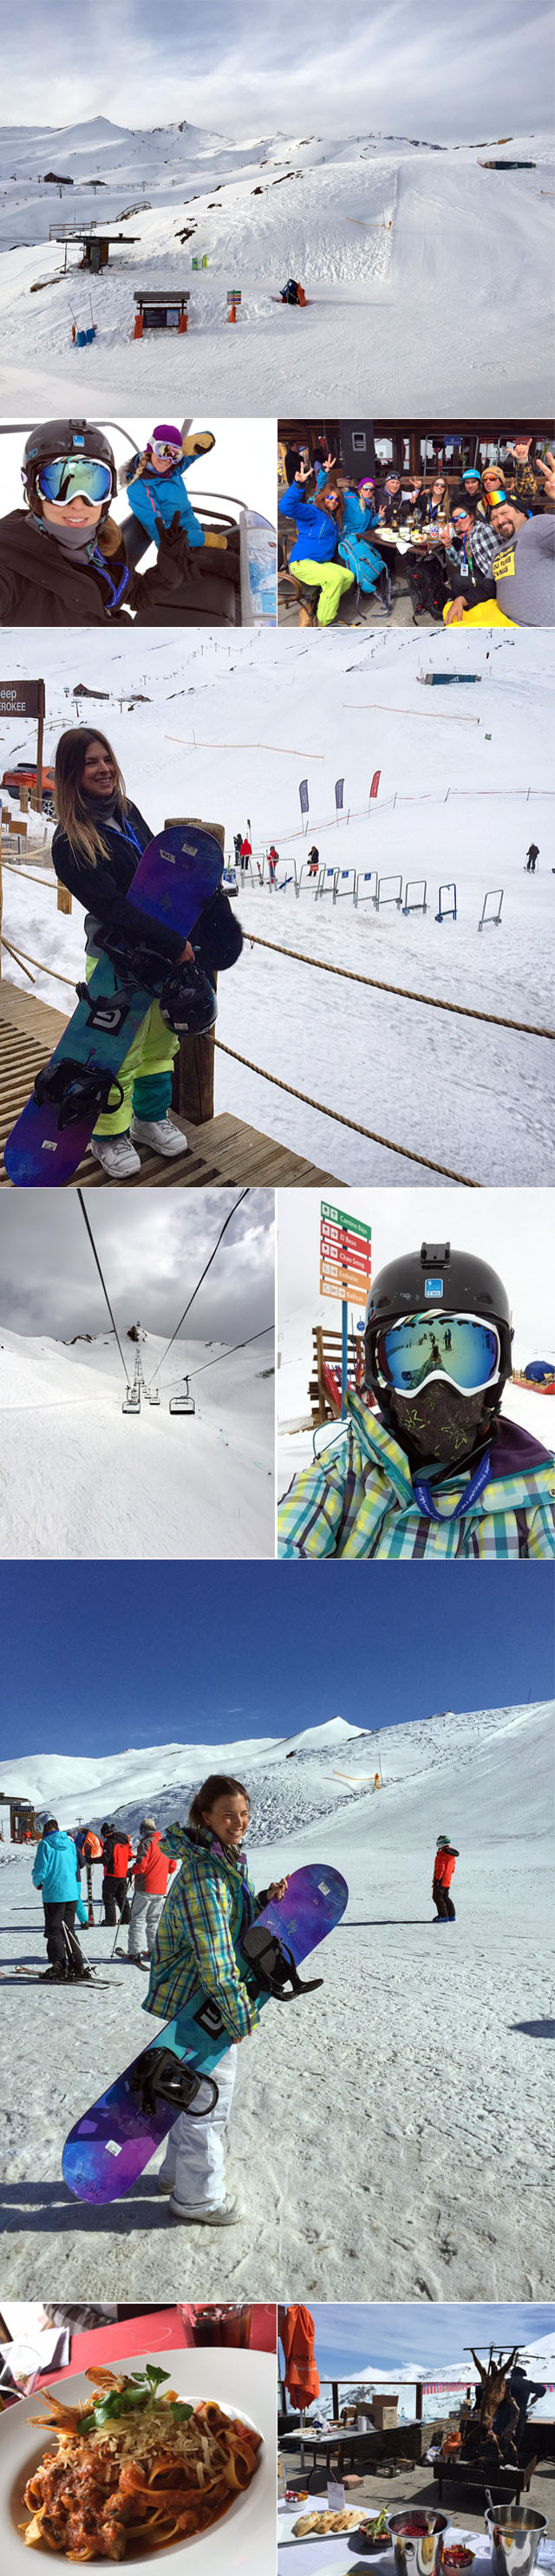 Temporada 2015 no Valle Nevado